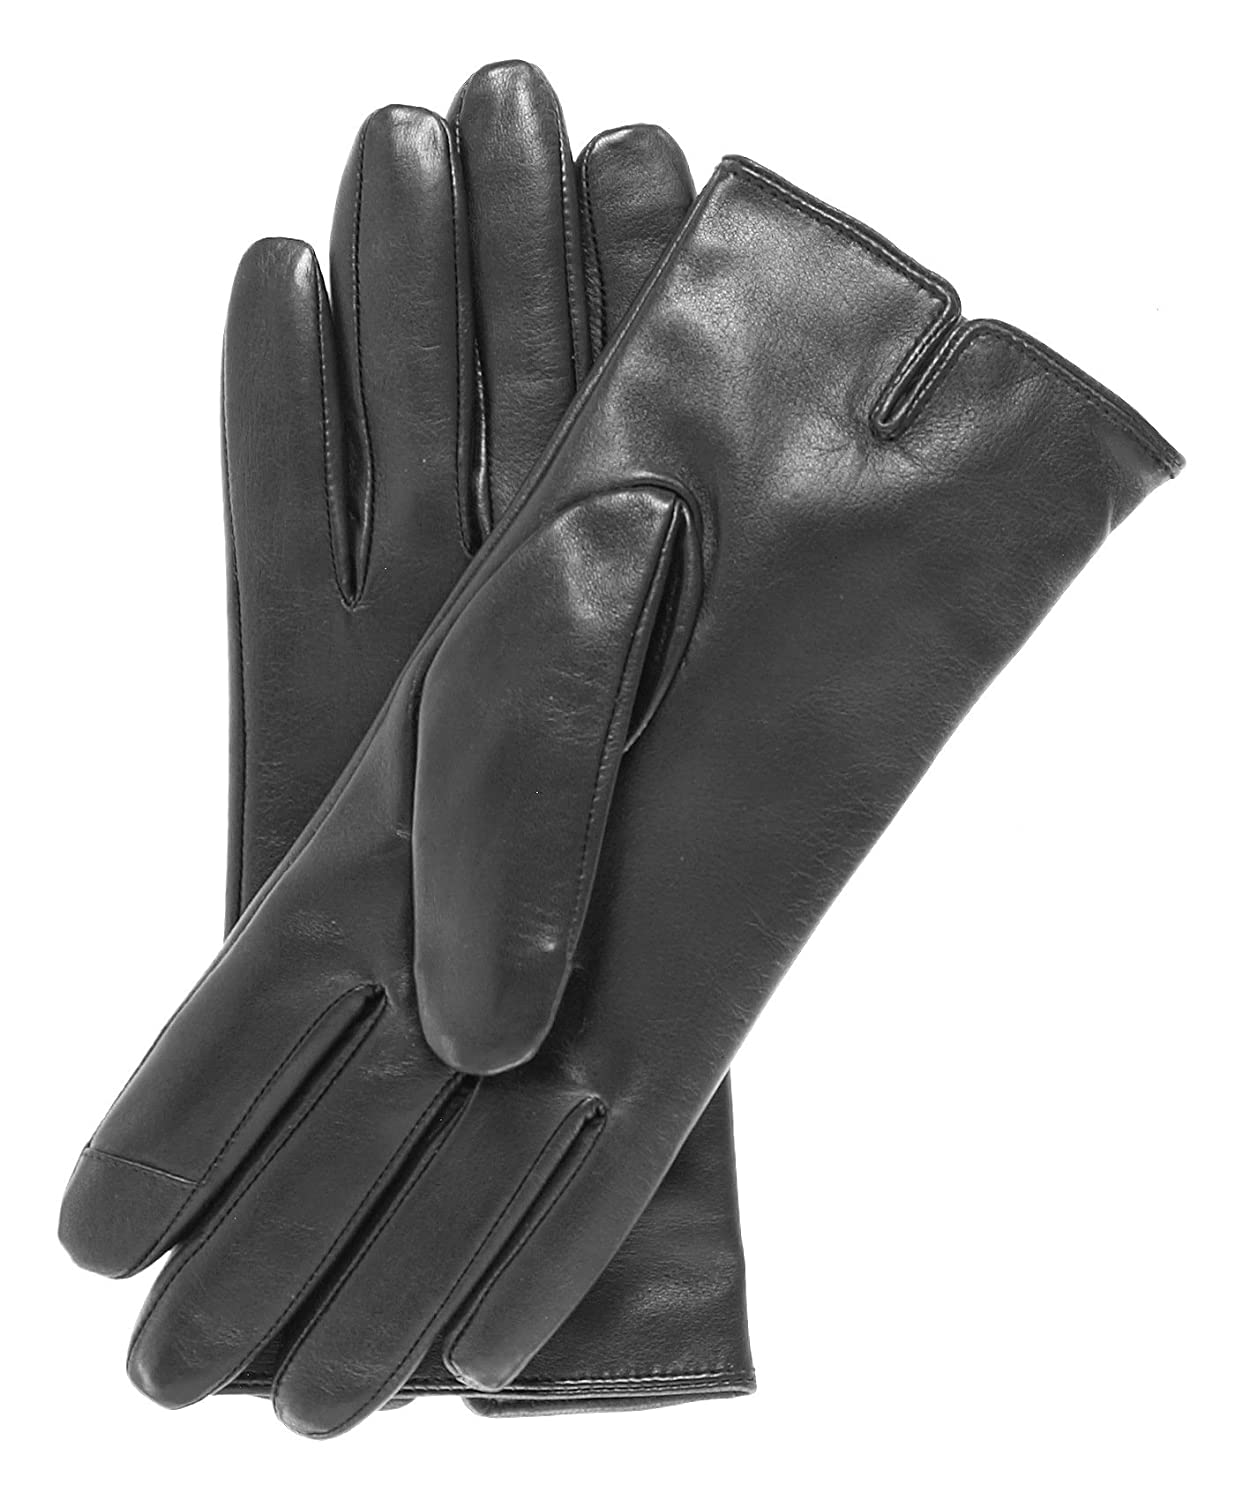 Black leather gloves brisbane - Pratt And Hart Women S Wool Lined Touchscreen Leather Gloves Size 6 1 2 Color Black At Amazon Women S Clothing Store Cold Weather Gloves